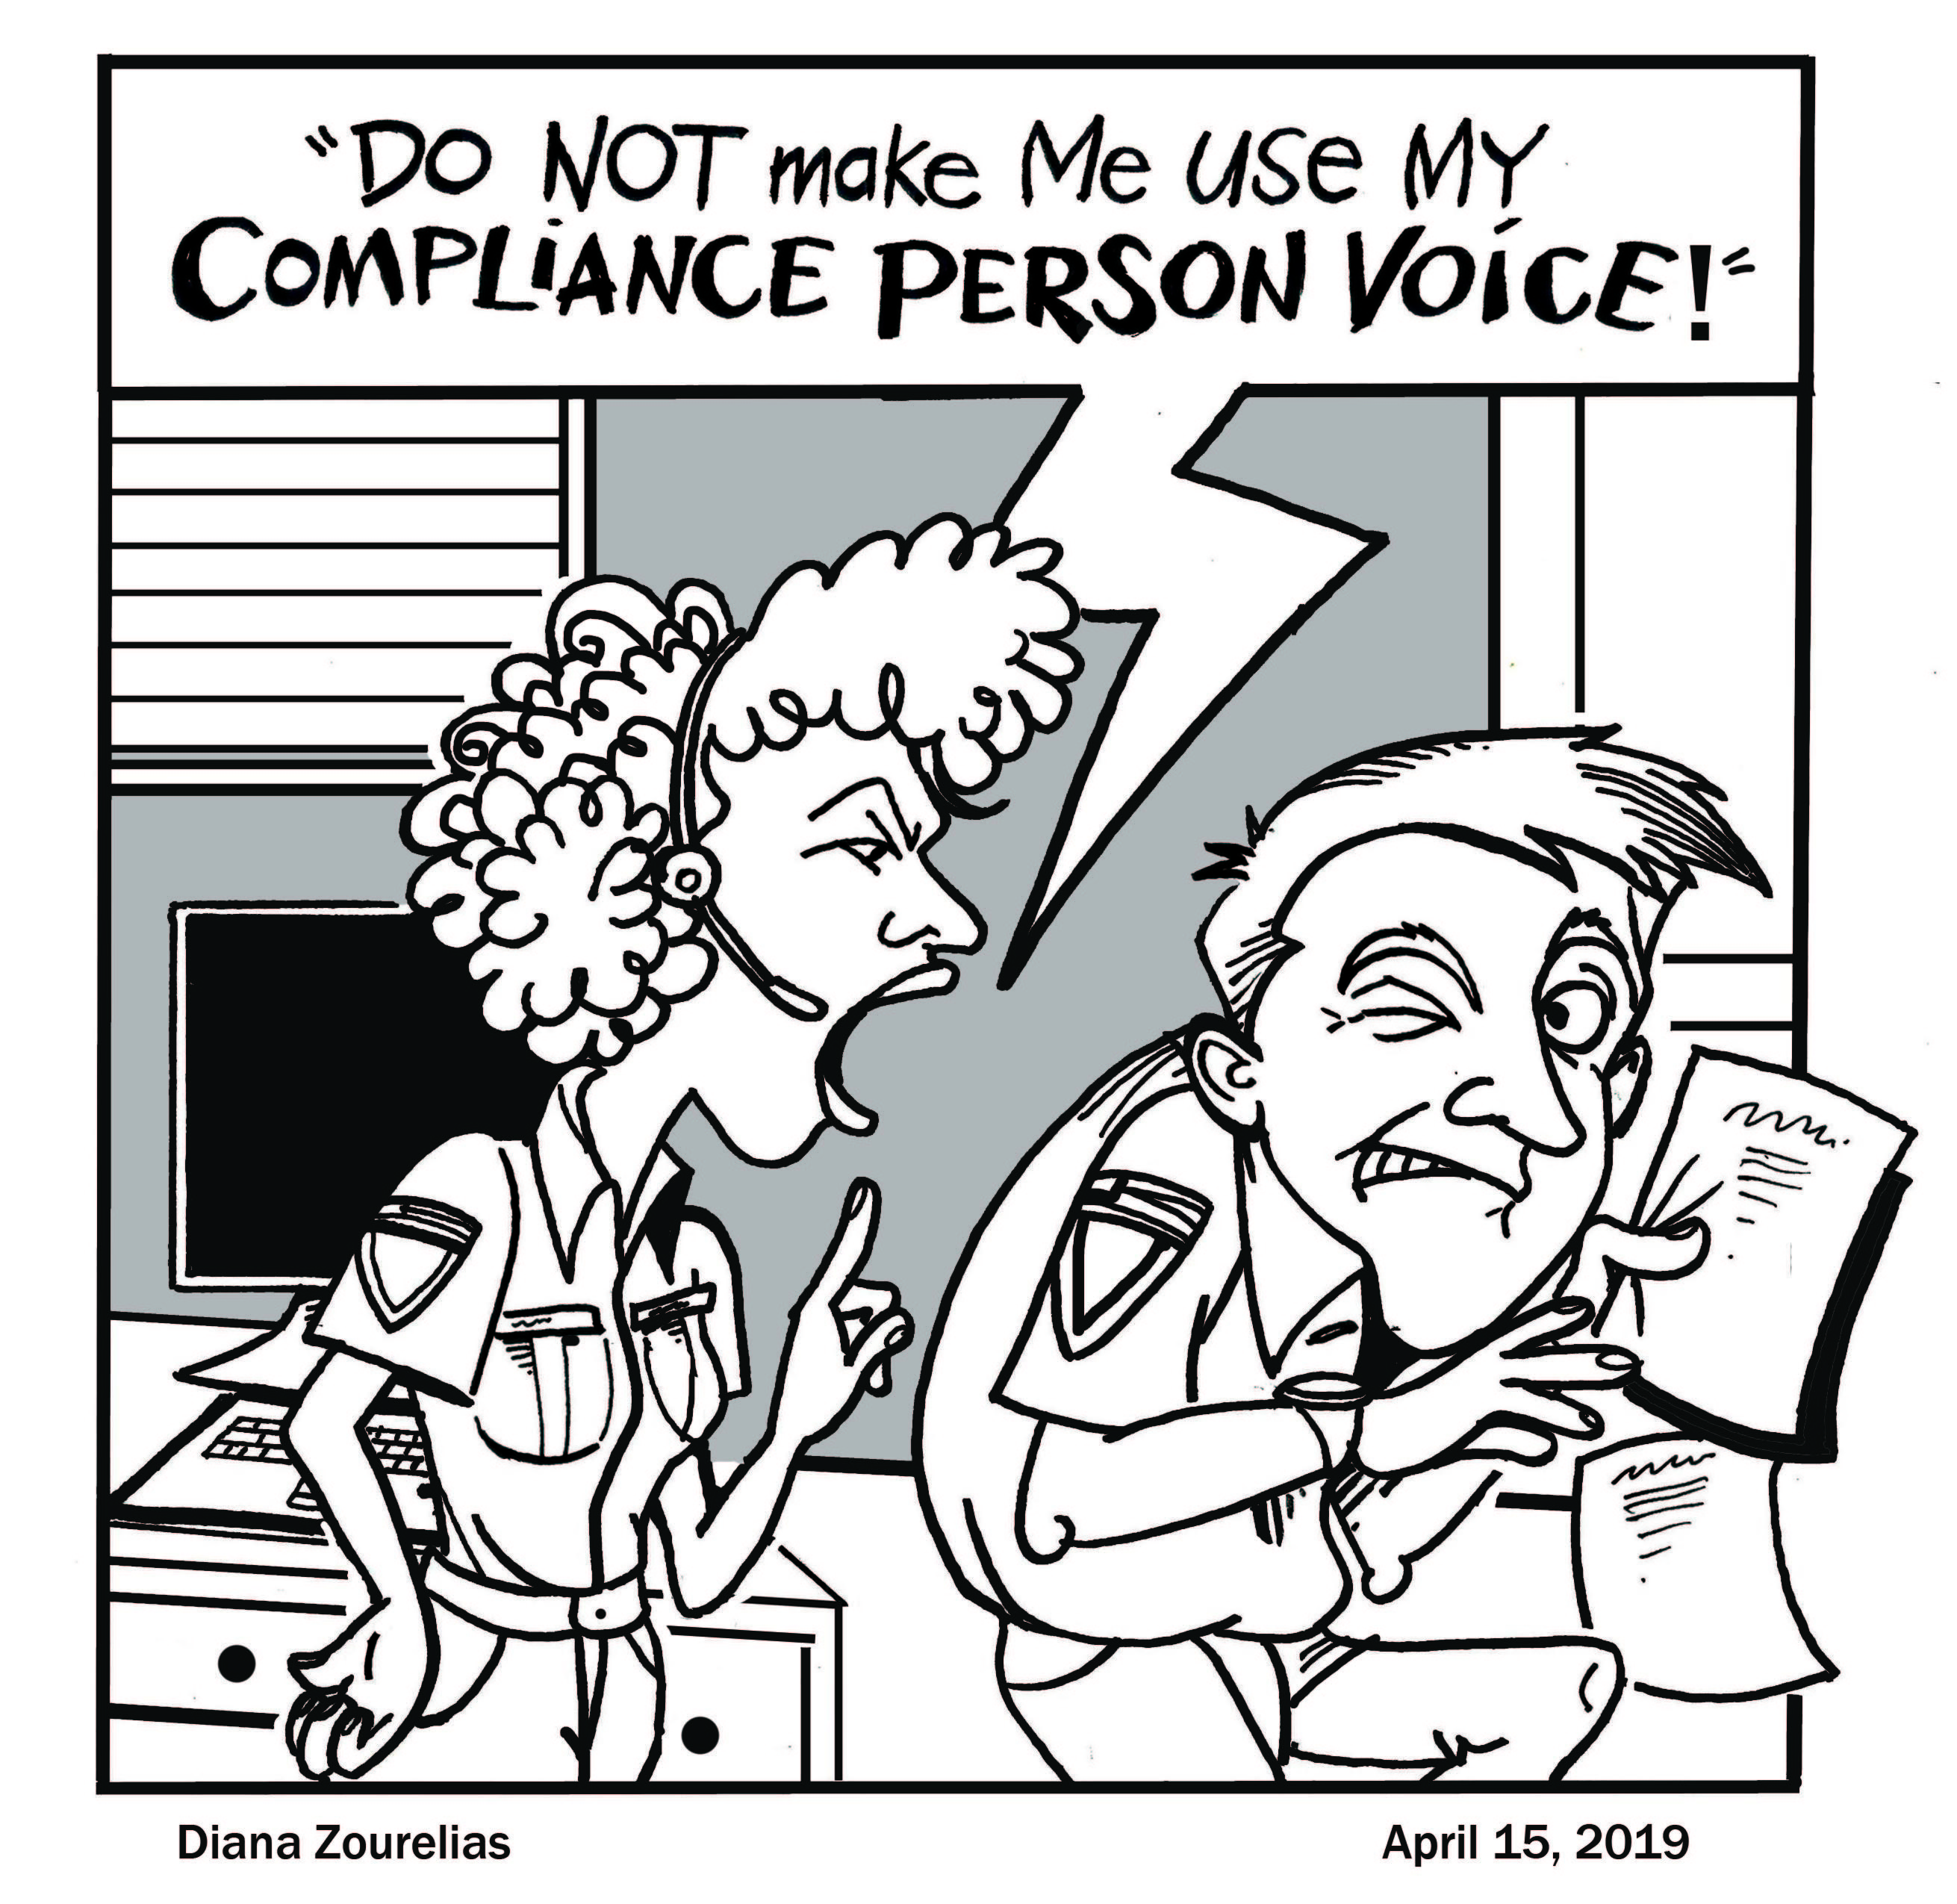 Beware of Compliance-Person Voice!